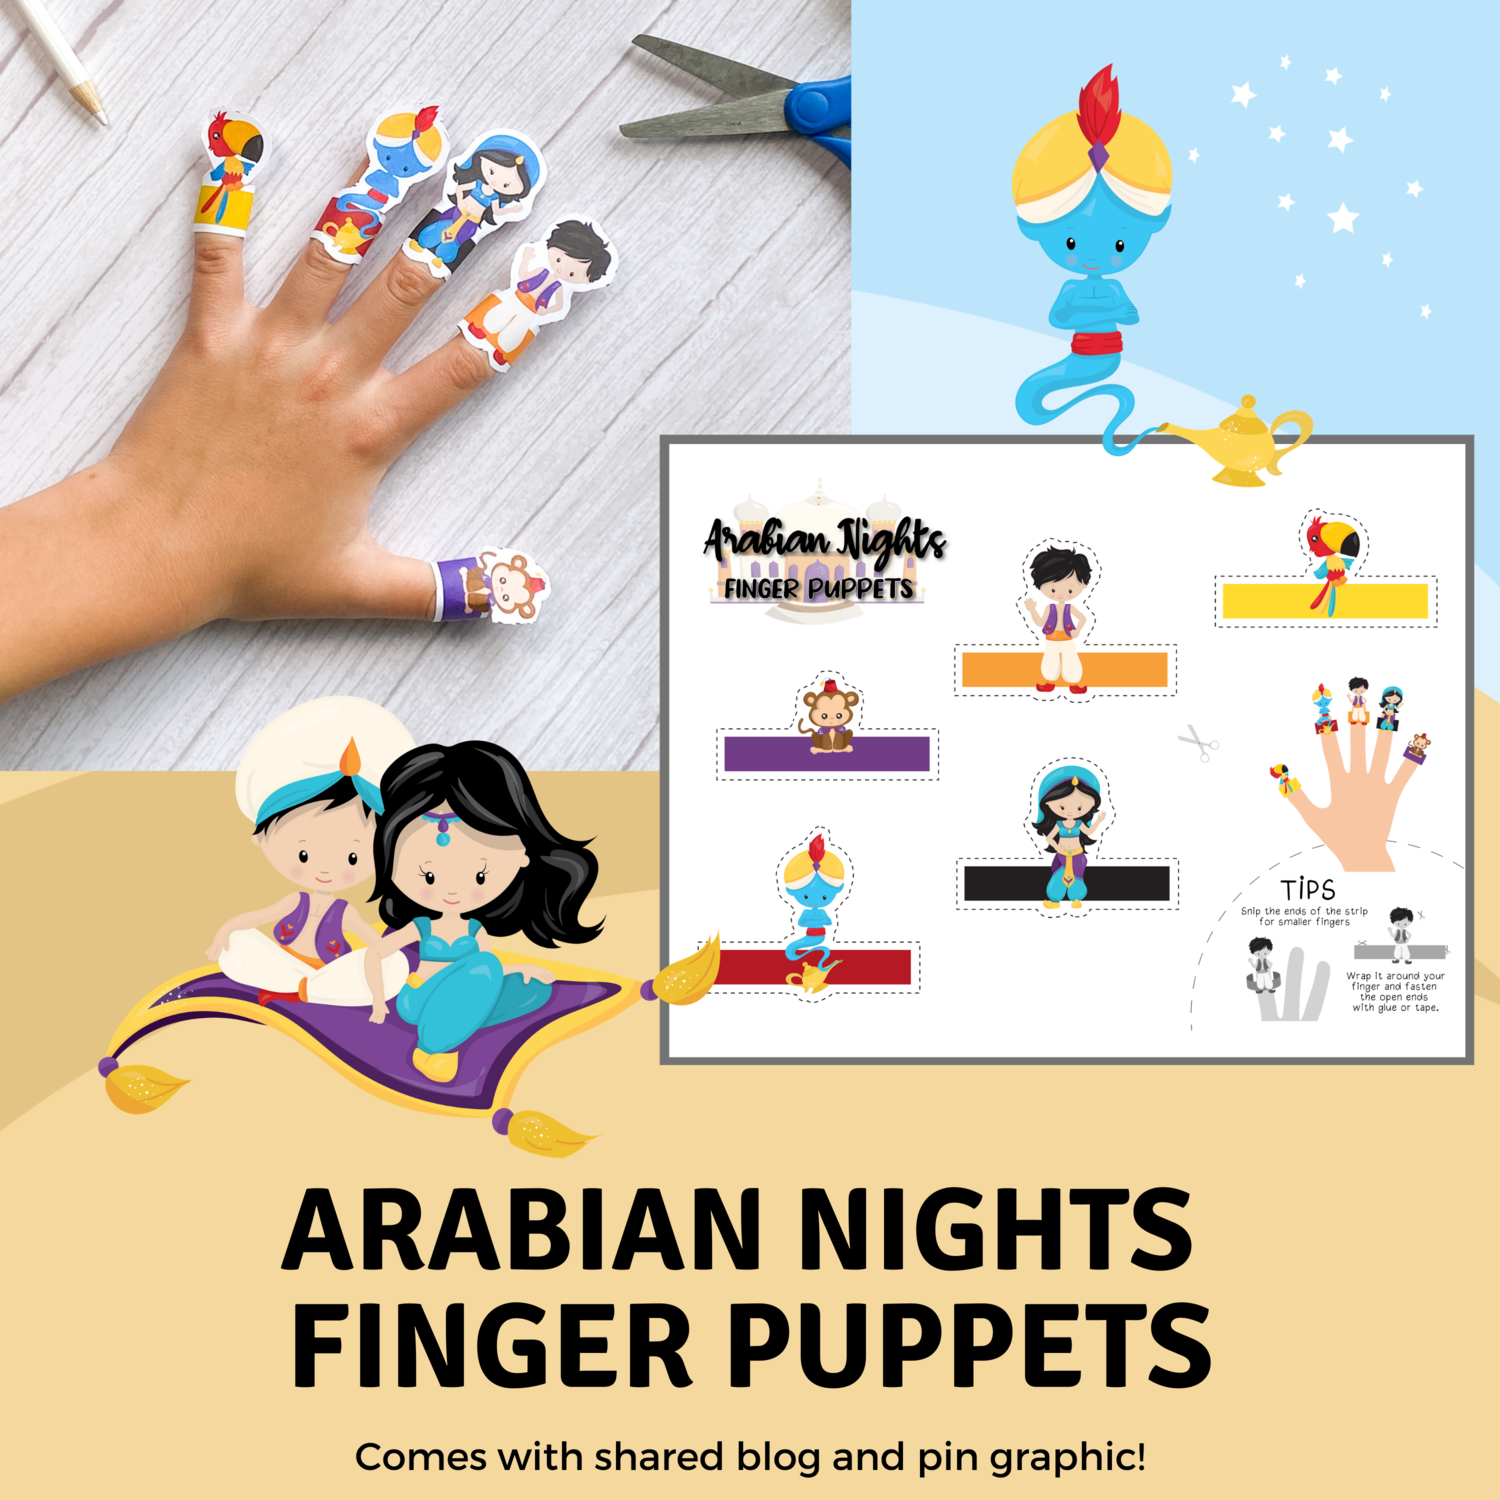 Arabian Nights Finger Puppets for Corinne